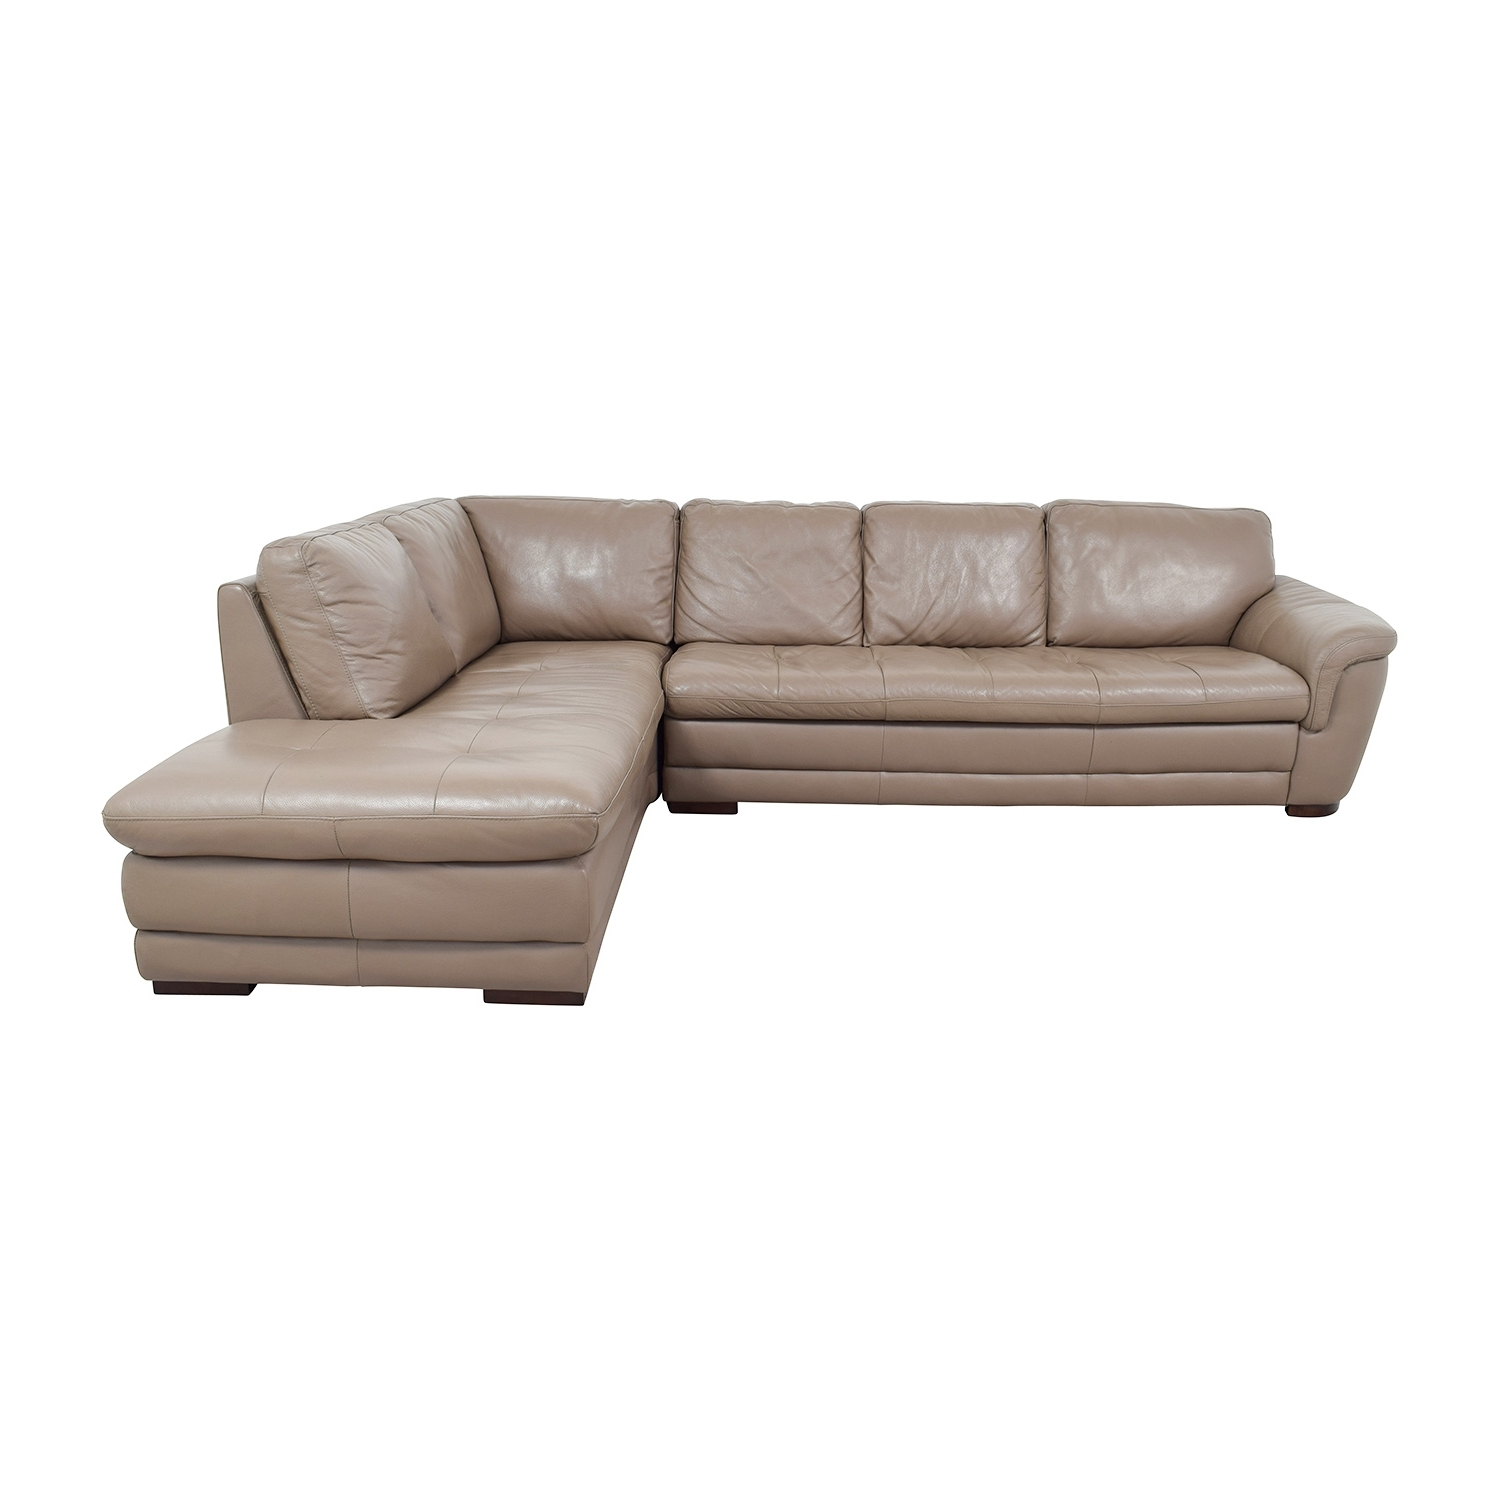 [%74% Off – Raymour And Flanigan Raymour & Flanigan Tan Tufted Regarding Most Recently Released Raymour And Flanigan Sectional Sofas|Raymour And Flanigan Sectional Sofas With Most Recent 74% Off – Raymour And Flanigan Raymour & Flanigan Tan Tufted|Well Known Raymour And Flanigan Sectional Sofas Inside 74% Off – Raymour And Flanigan Raymour & Flanigan Tan Tufted|2018 74% Off – Raymour And Flanigan Raymour & Flanigan Tan Tufted In Raymour And Flanigan Sectional Sofas%] (View 4 of 15)